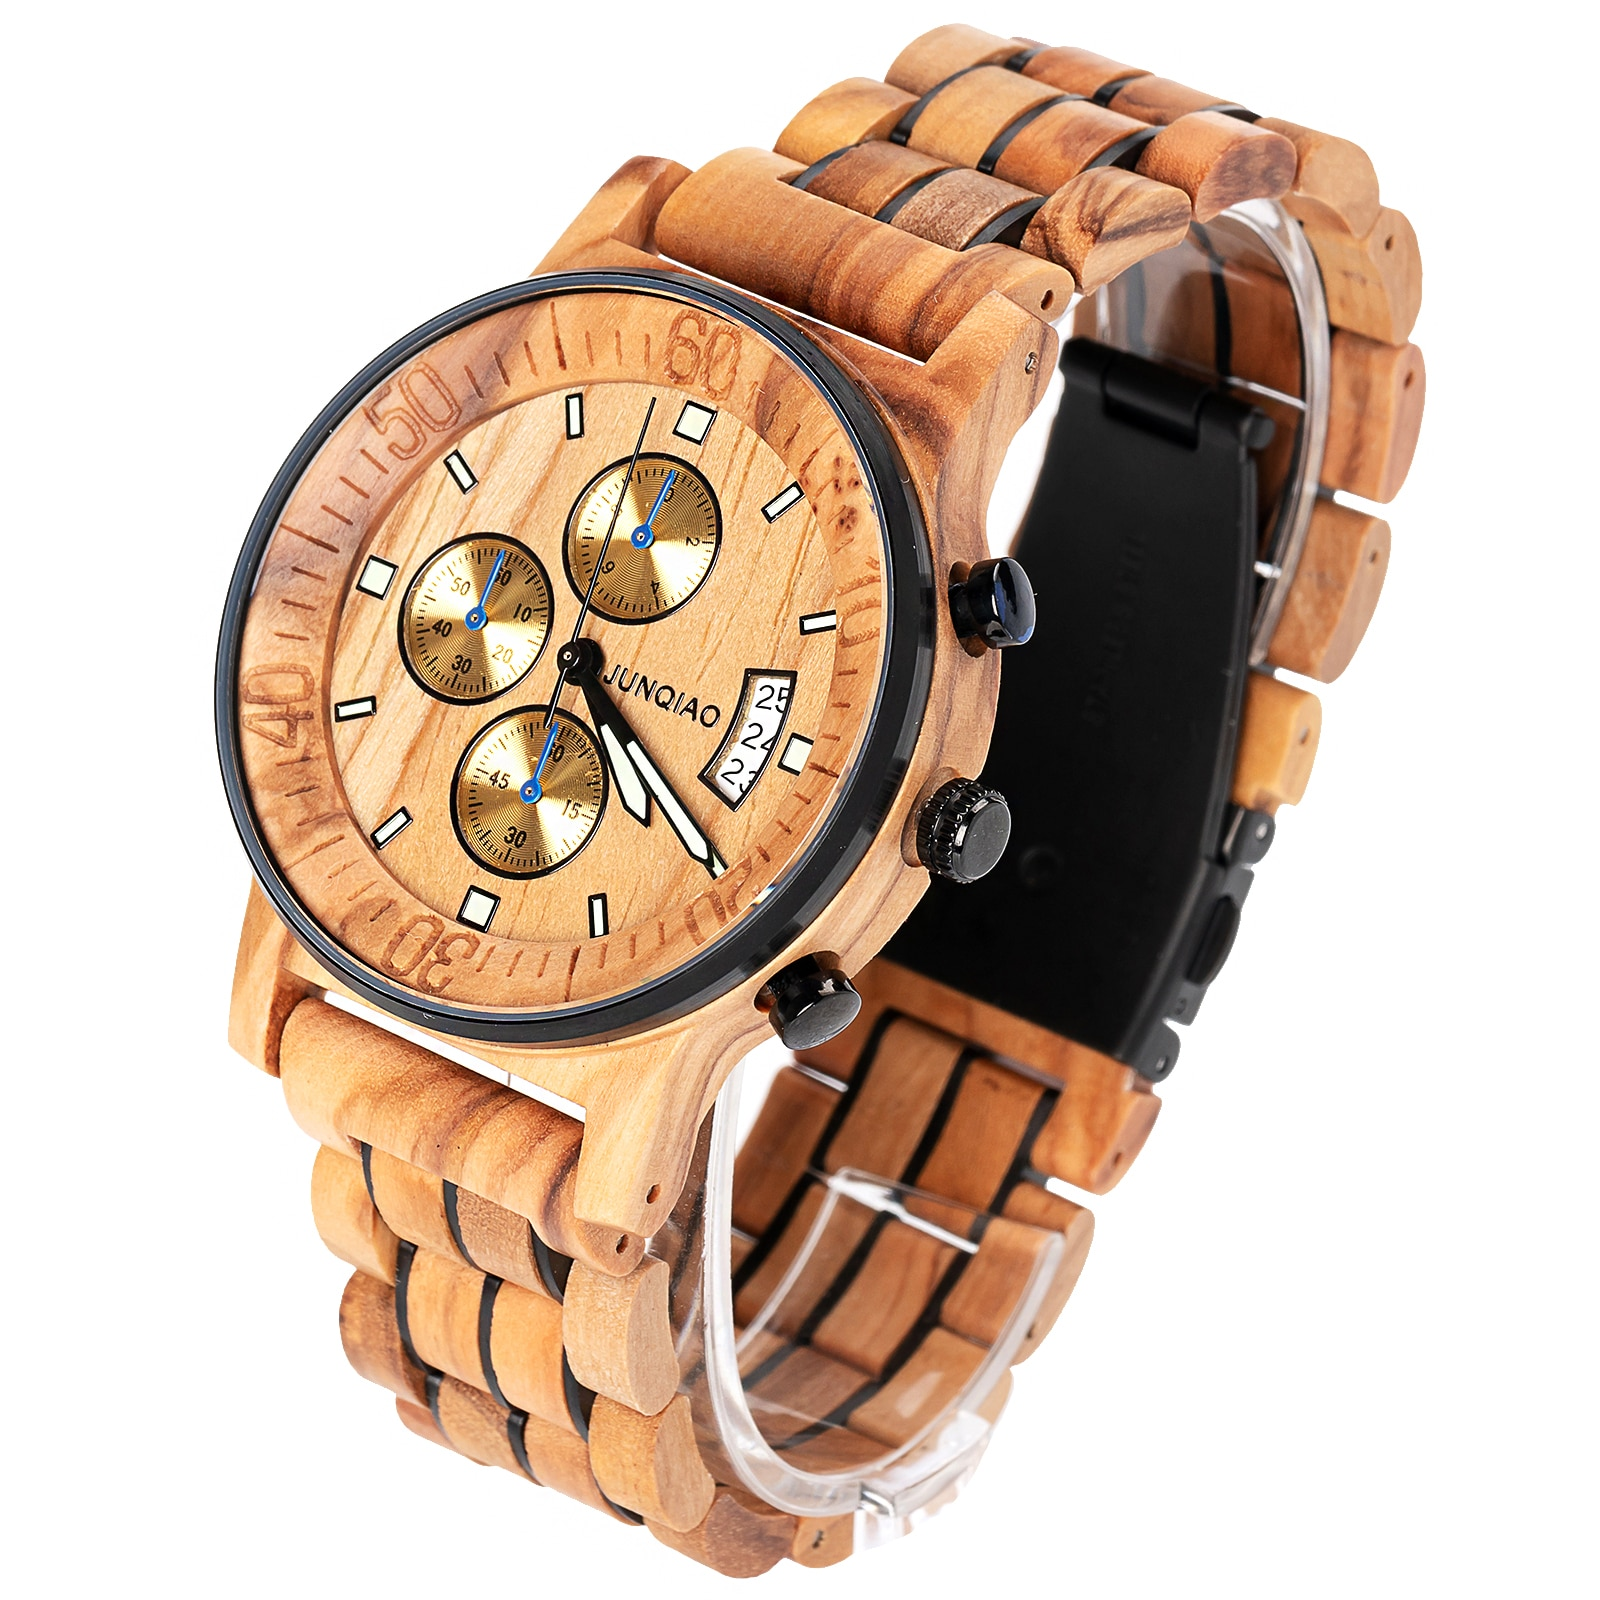 wood watch wrist watches men Quartz Wristwatch Chronograph Clock Male Fashion Sports men watches mal